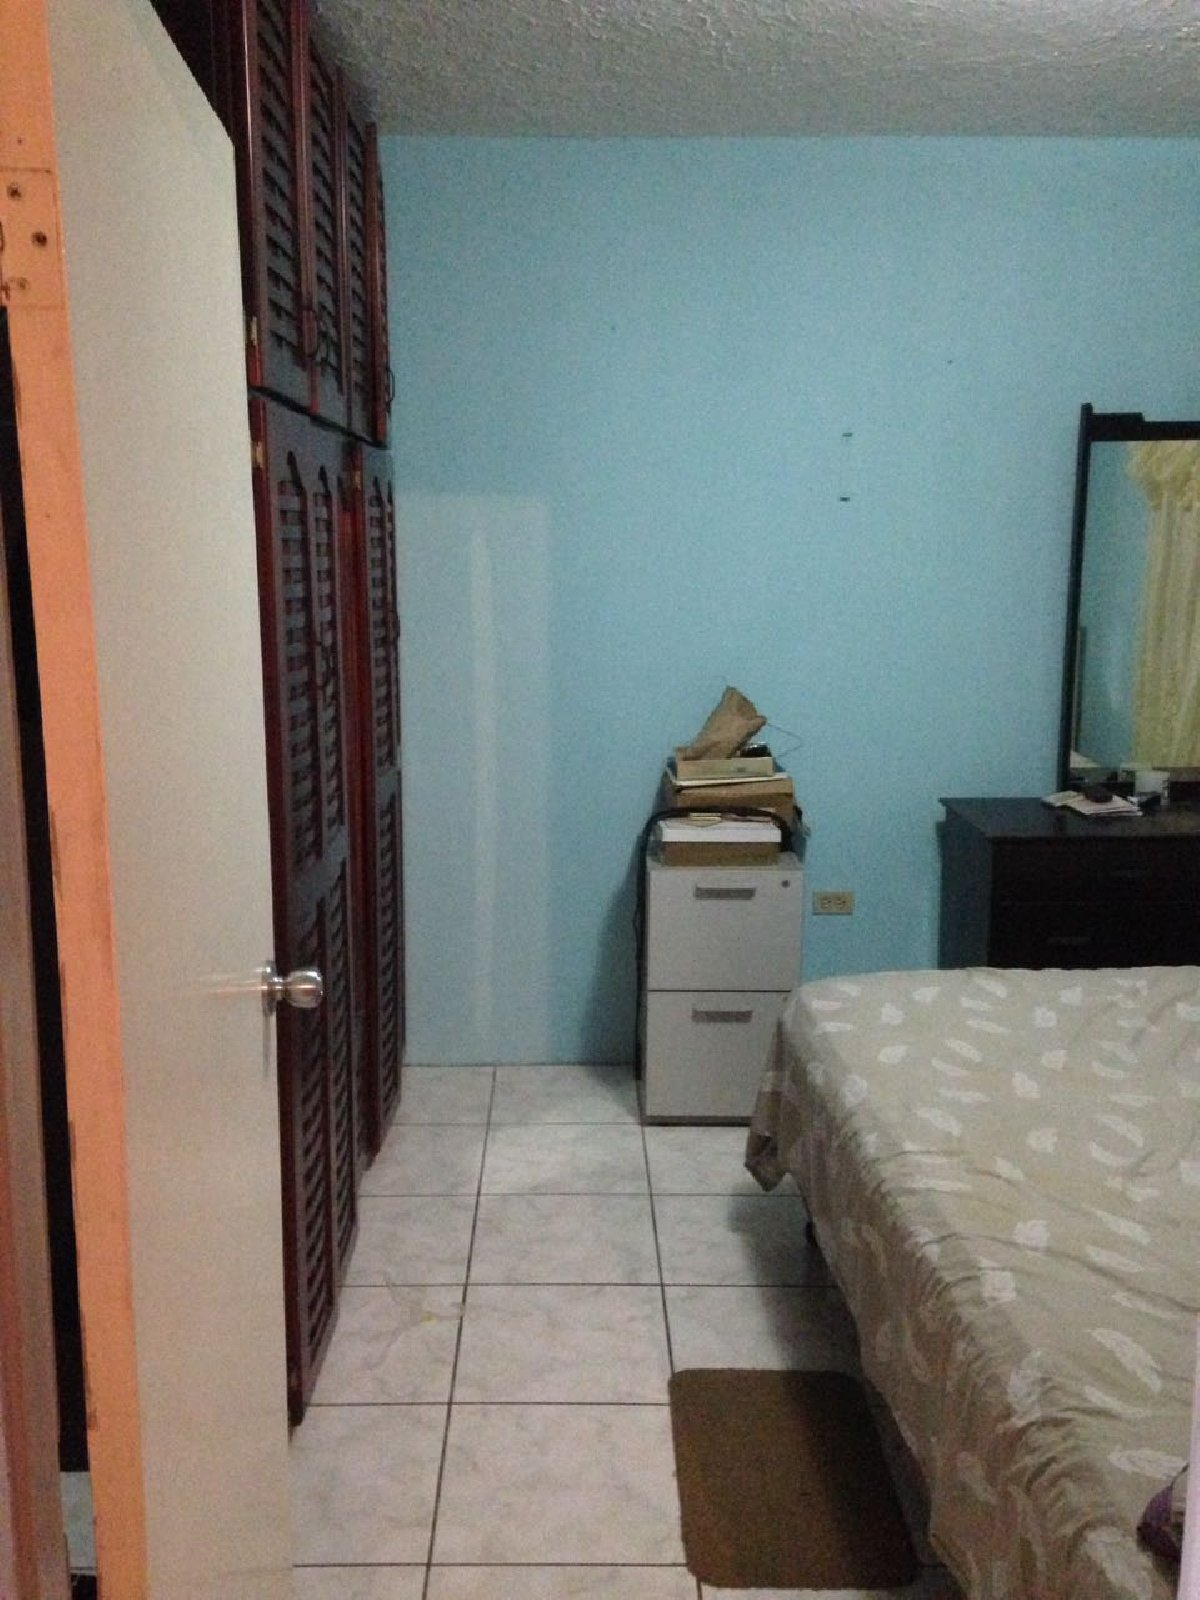 Cheap 2 Bedroom House For Rent: 2 Bedroom Apartment For Sale In Cooreville Gardens